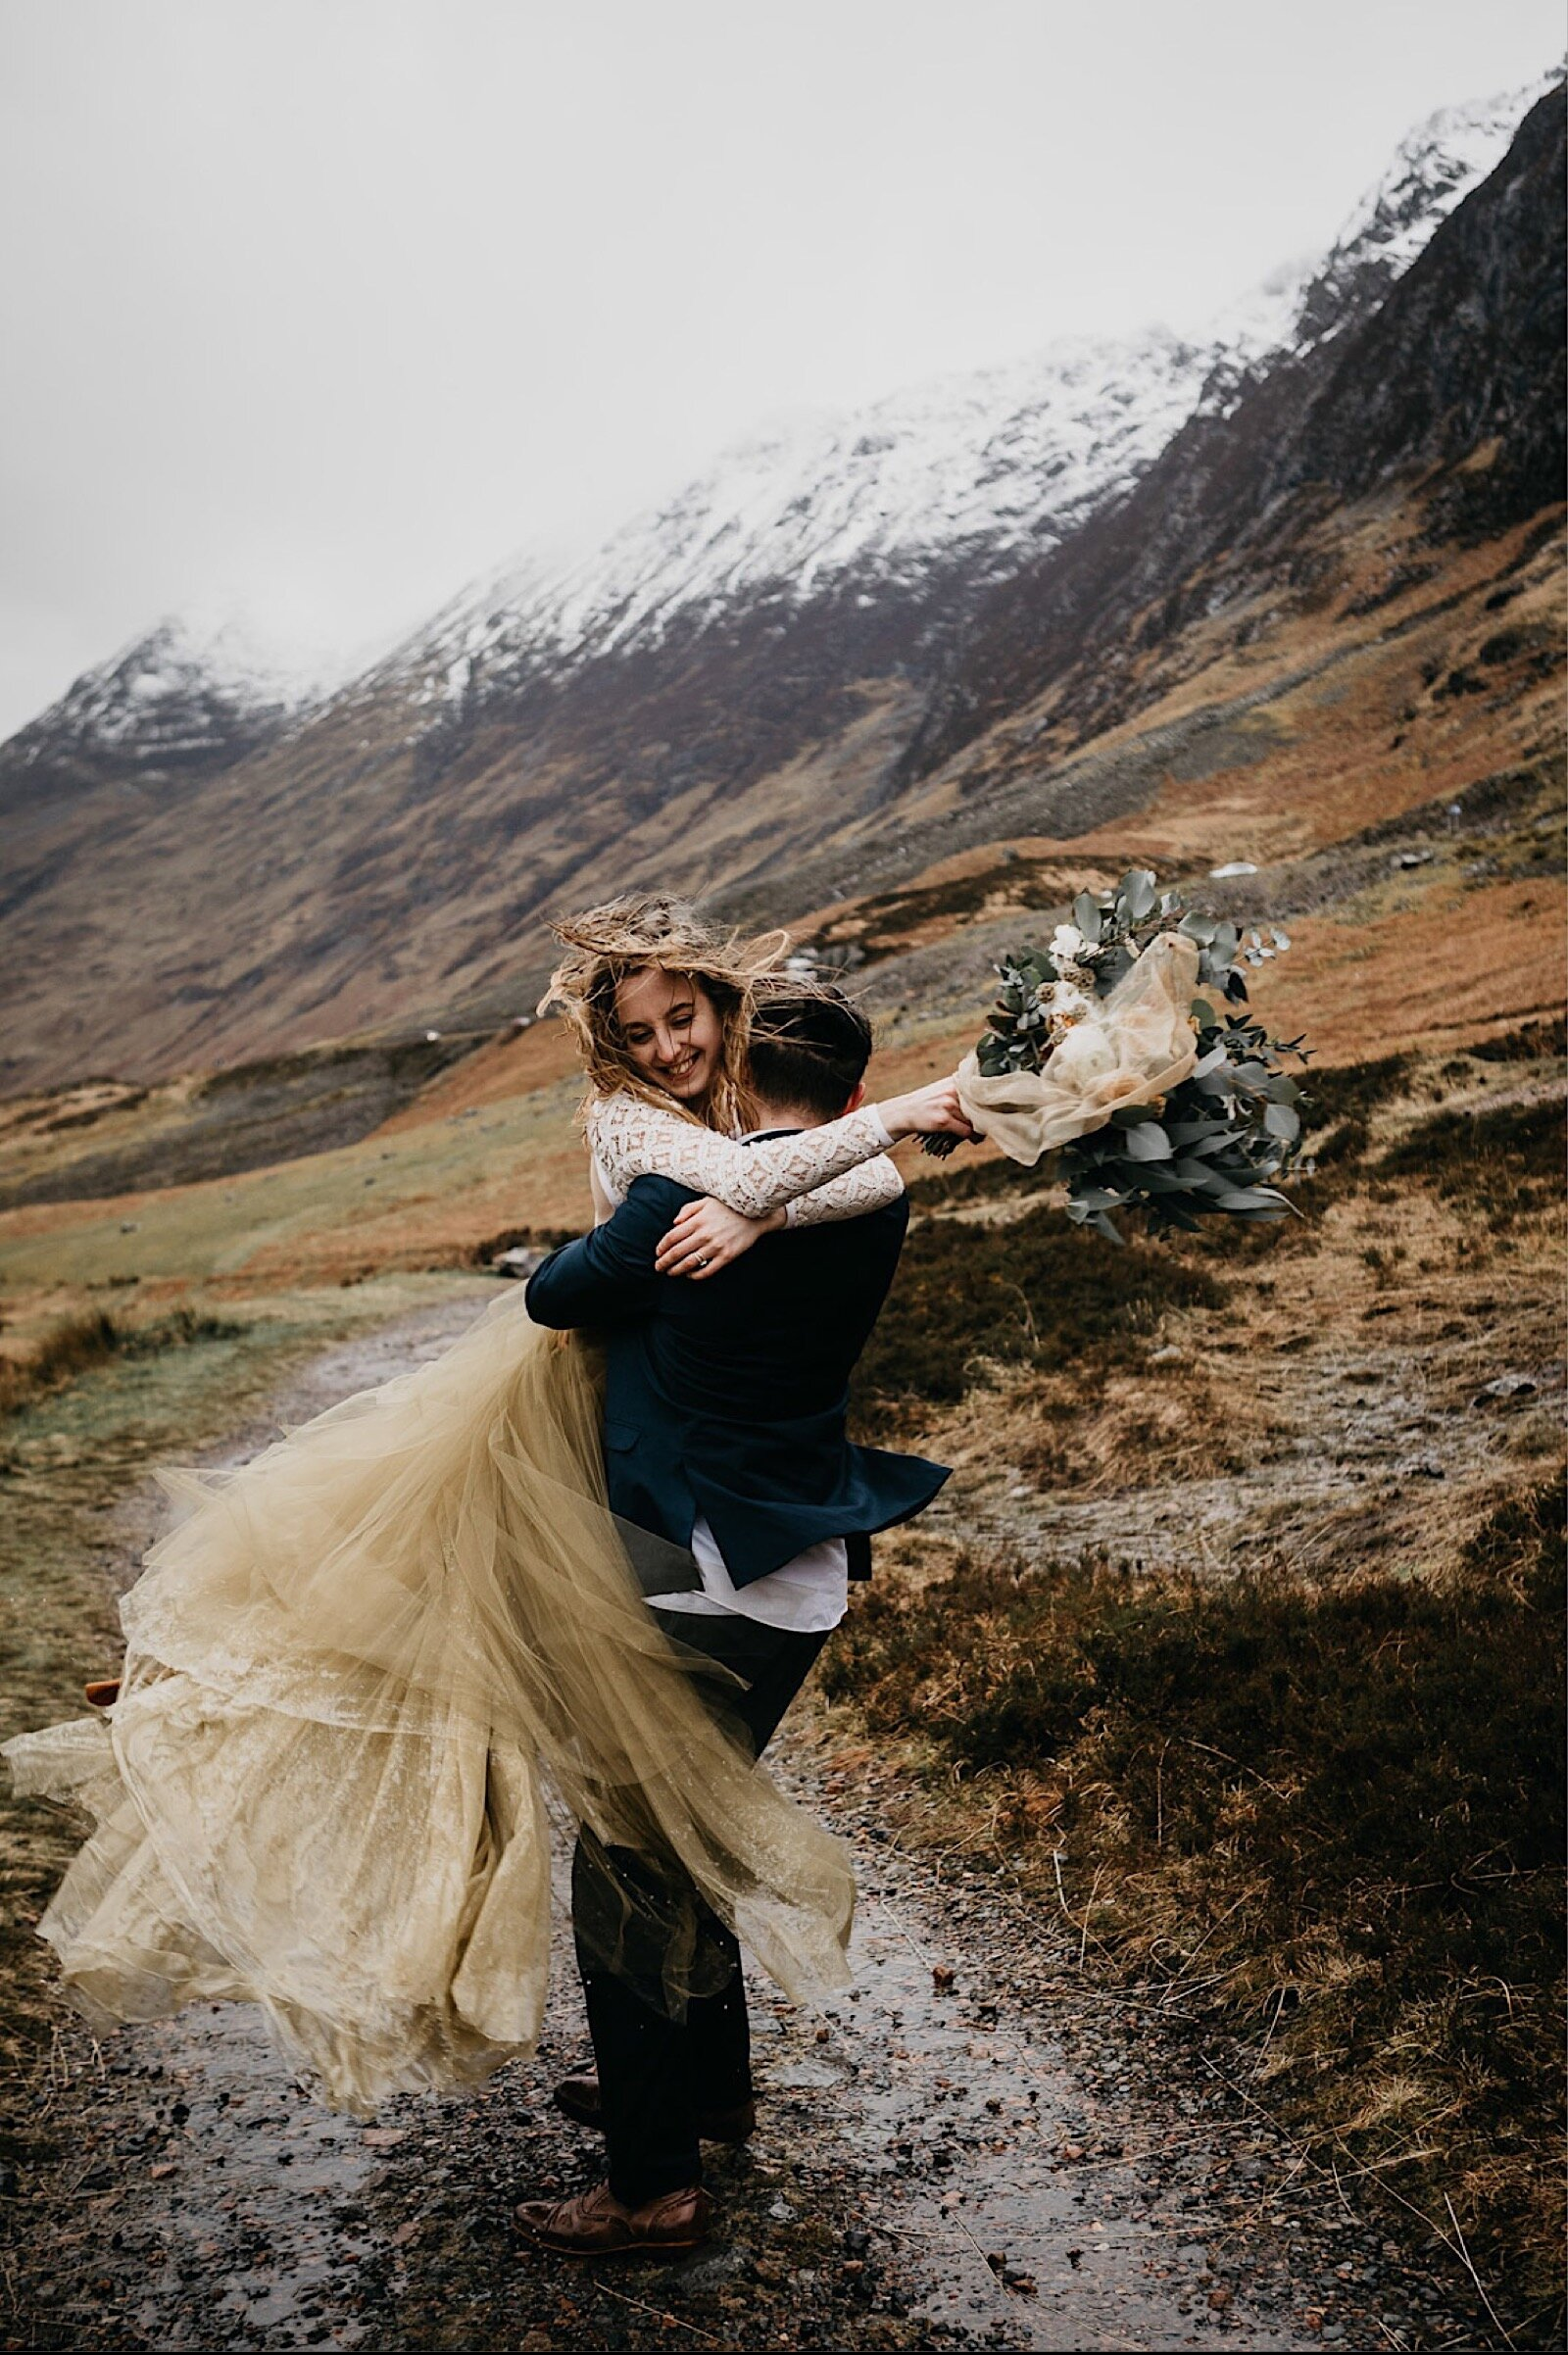 04_scotland_couple_shoot_lety_photography (35 von 42).jpg